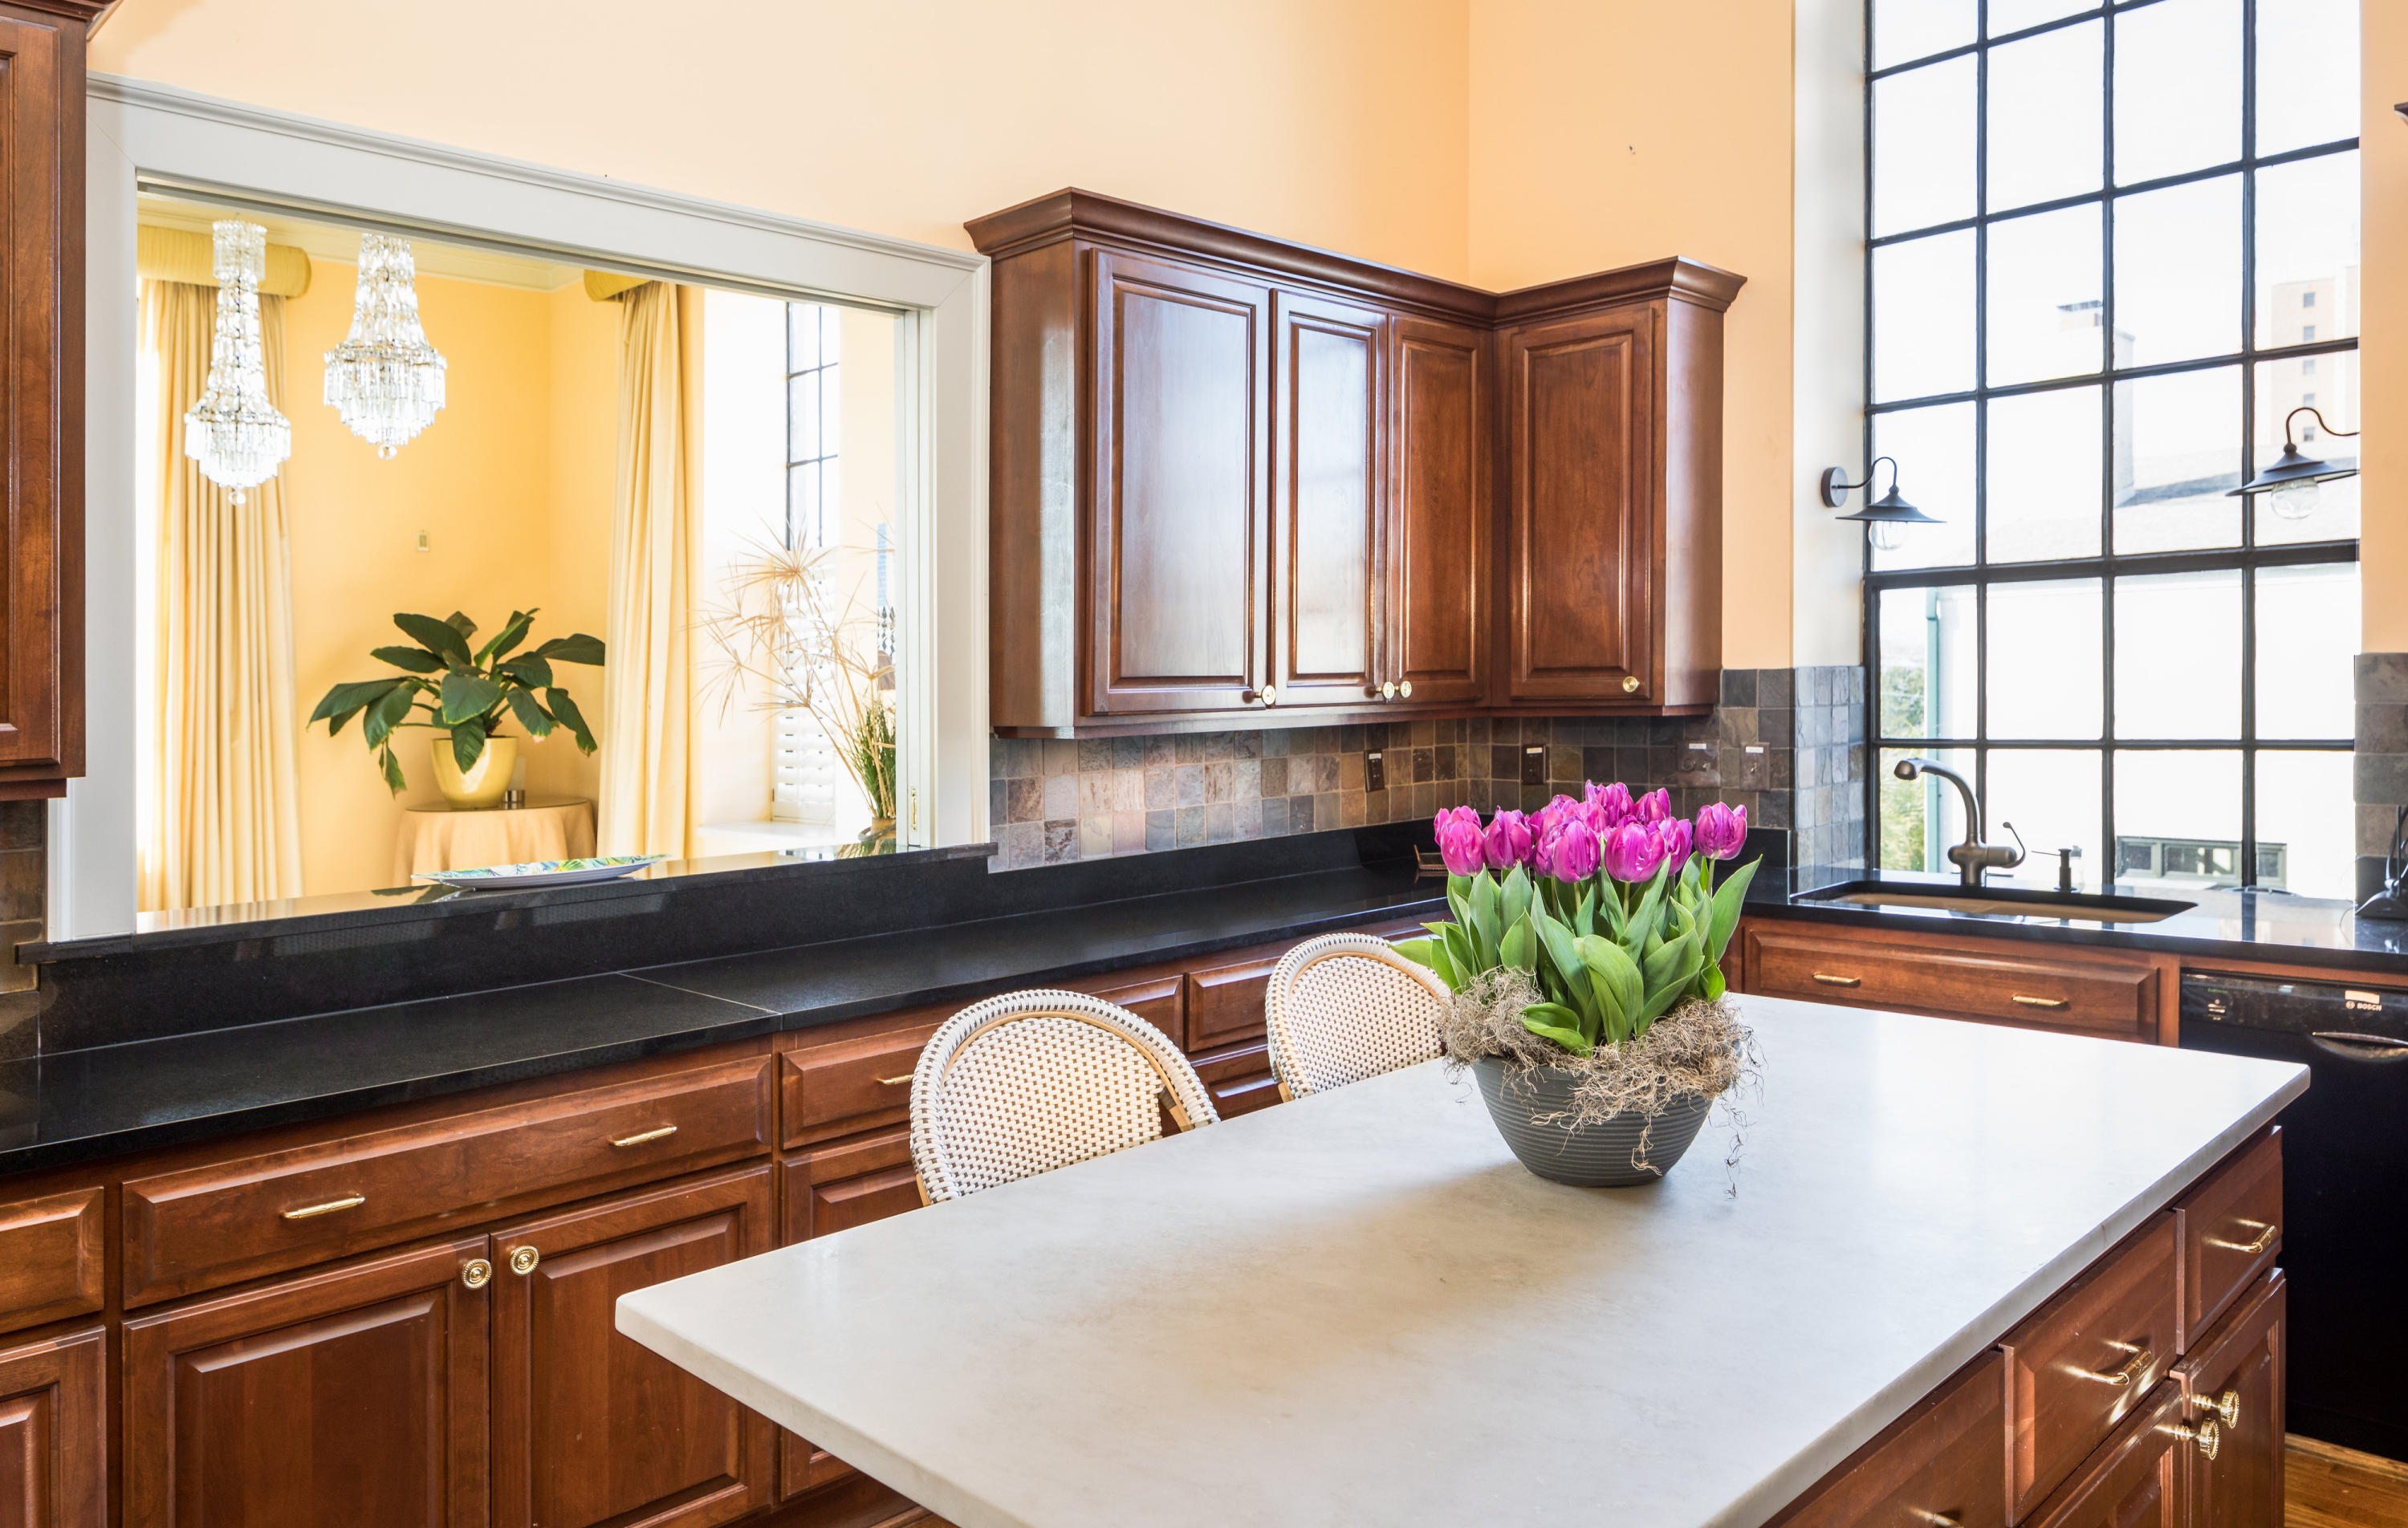 Home for sale 3 Chisolm Street, South Of Broad, Downtown Charleston, SC